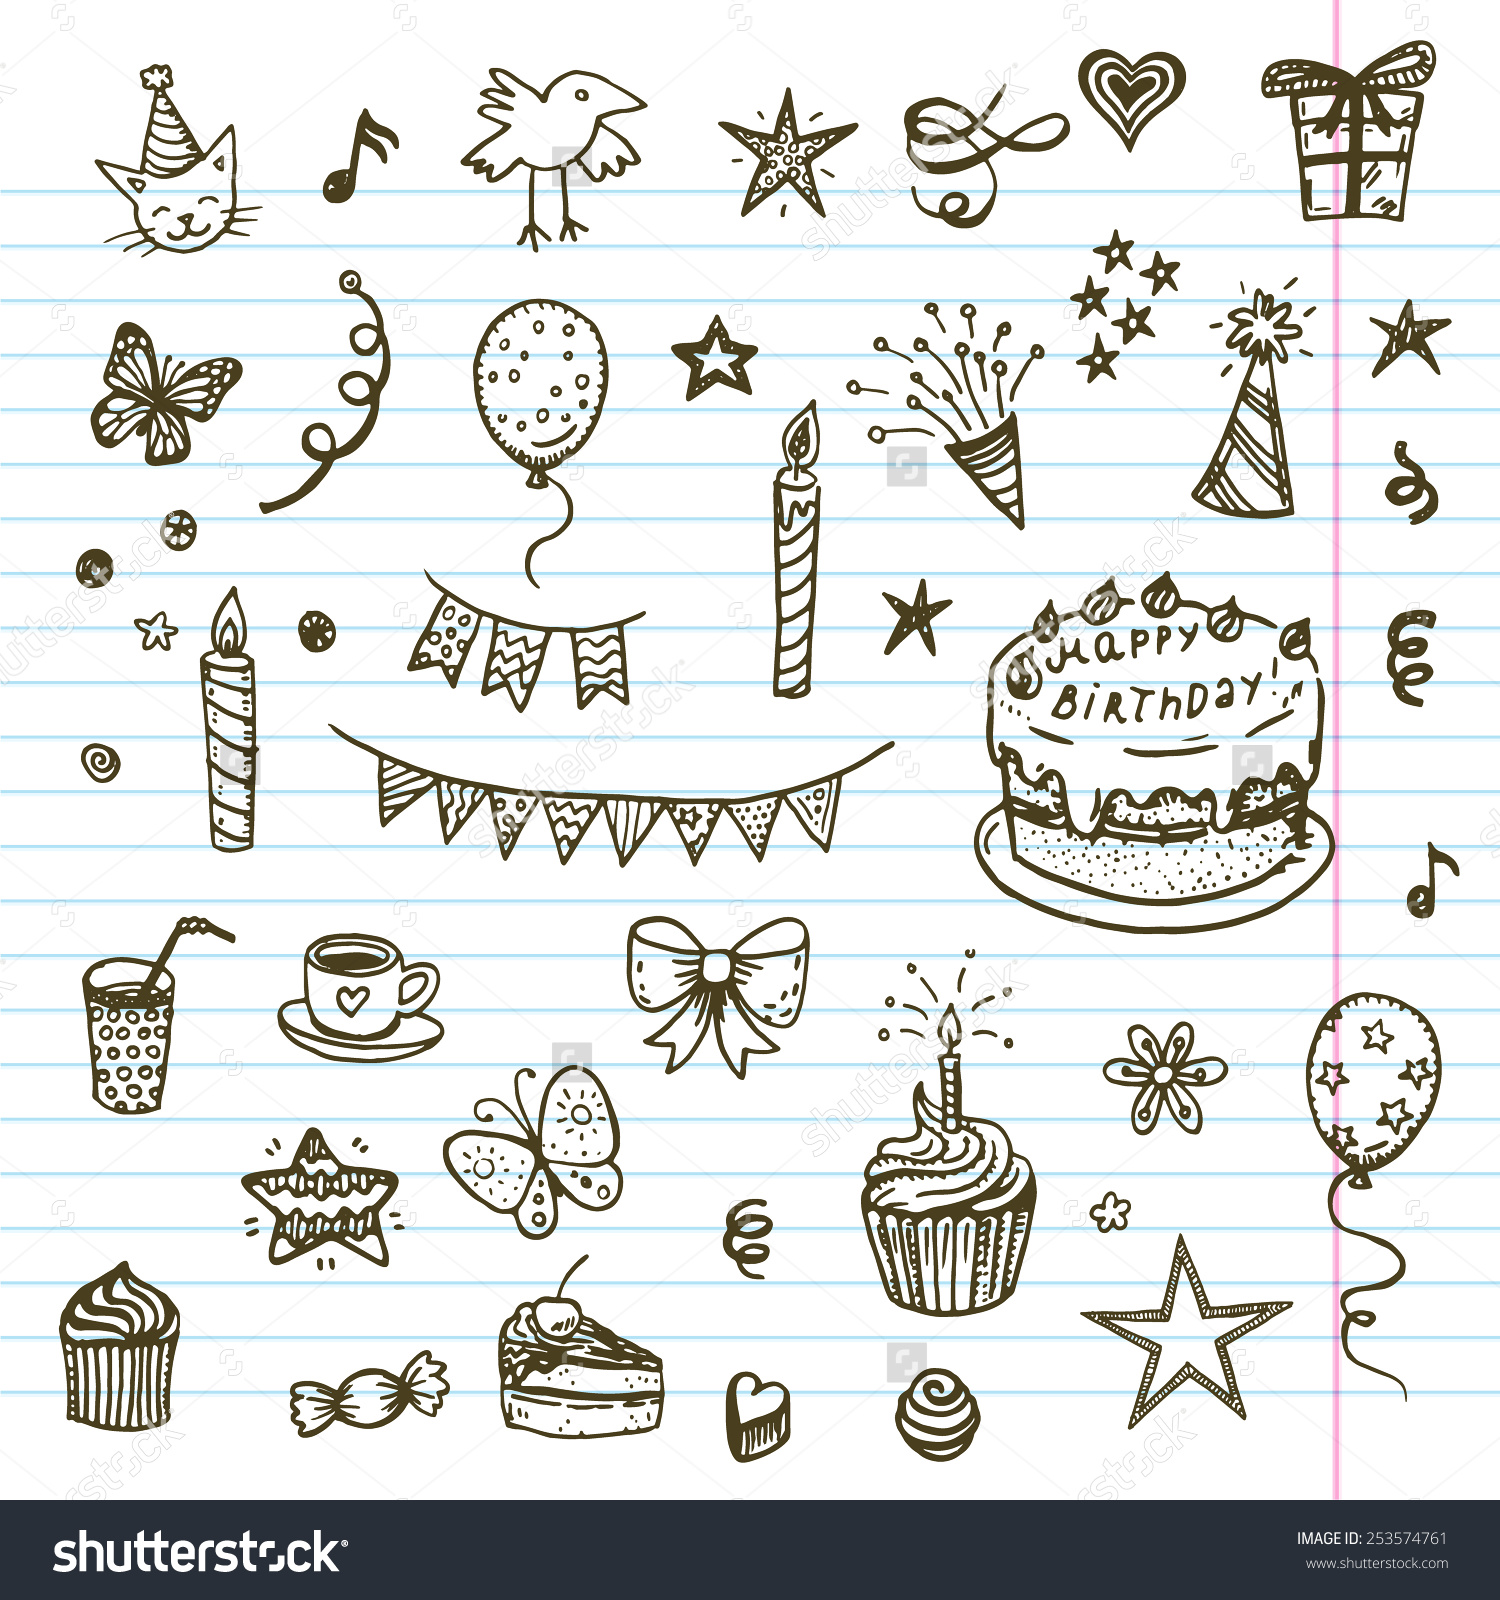 1500x1600 Pictures How To Draw Birthday Stuff,